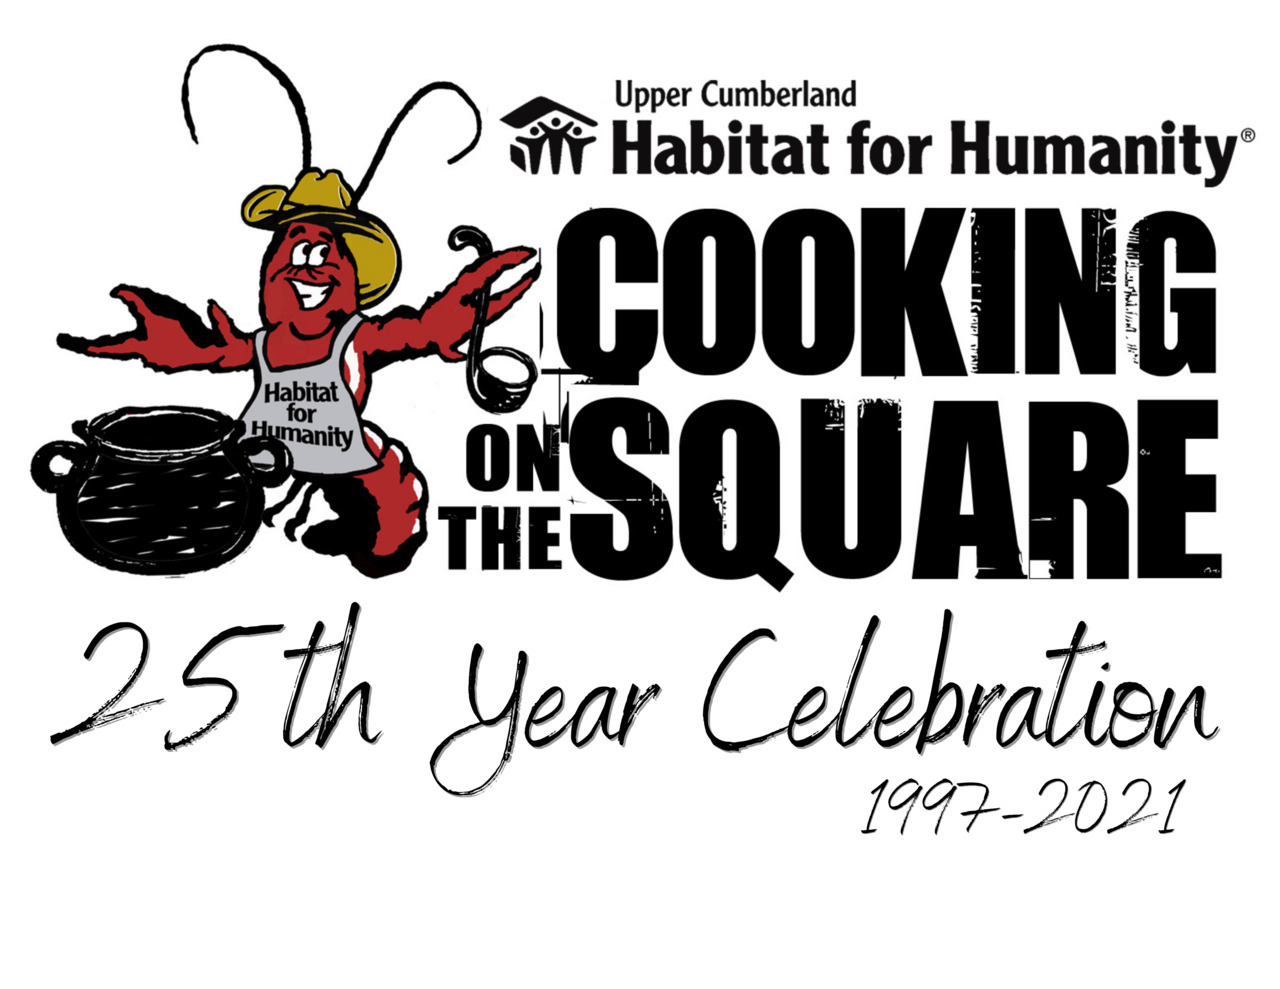 Cooking on the Square 25th Anniversary